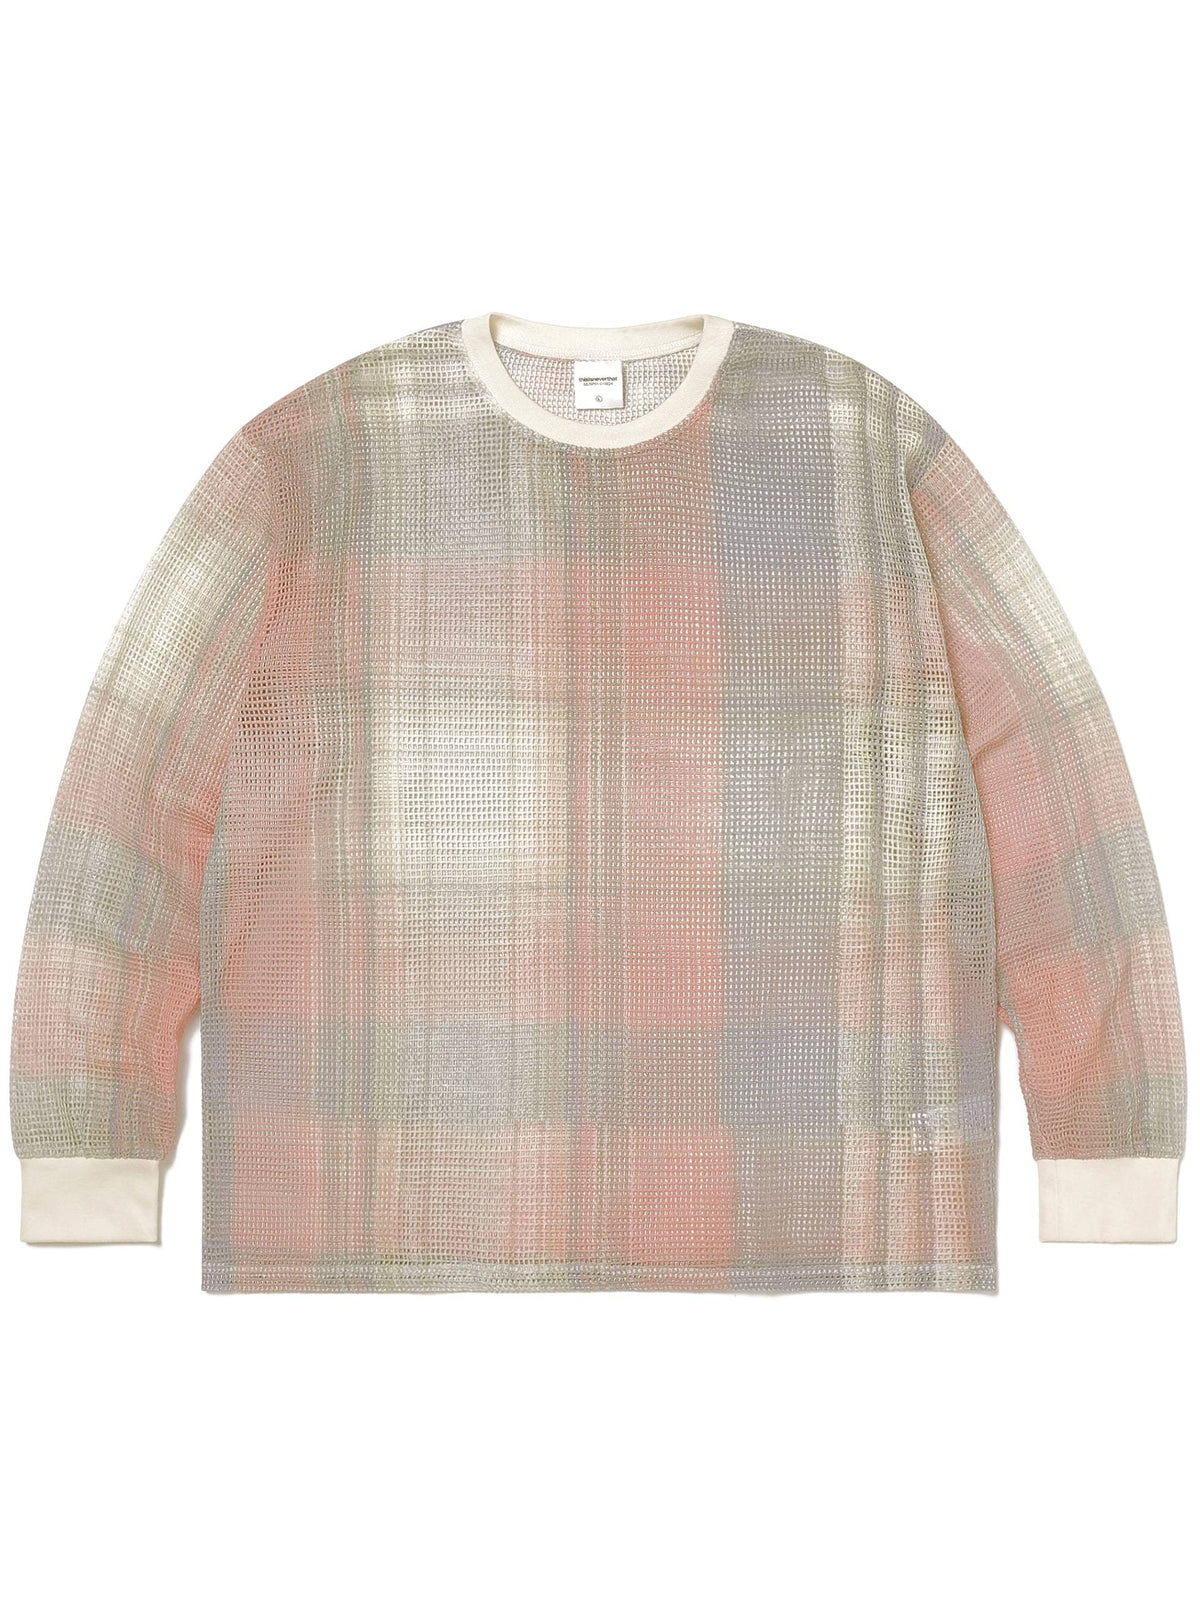 Printed Plaid Mesh Top TOPS / SWEATERS